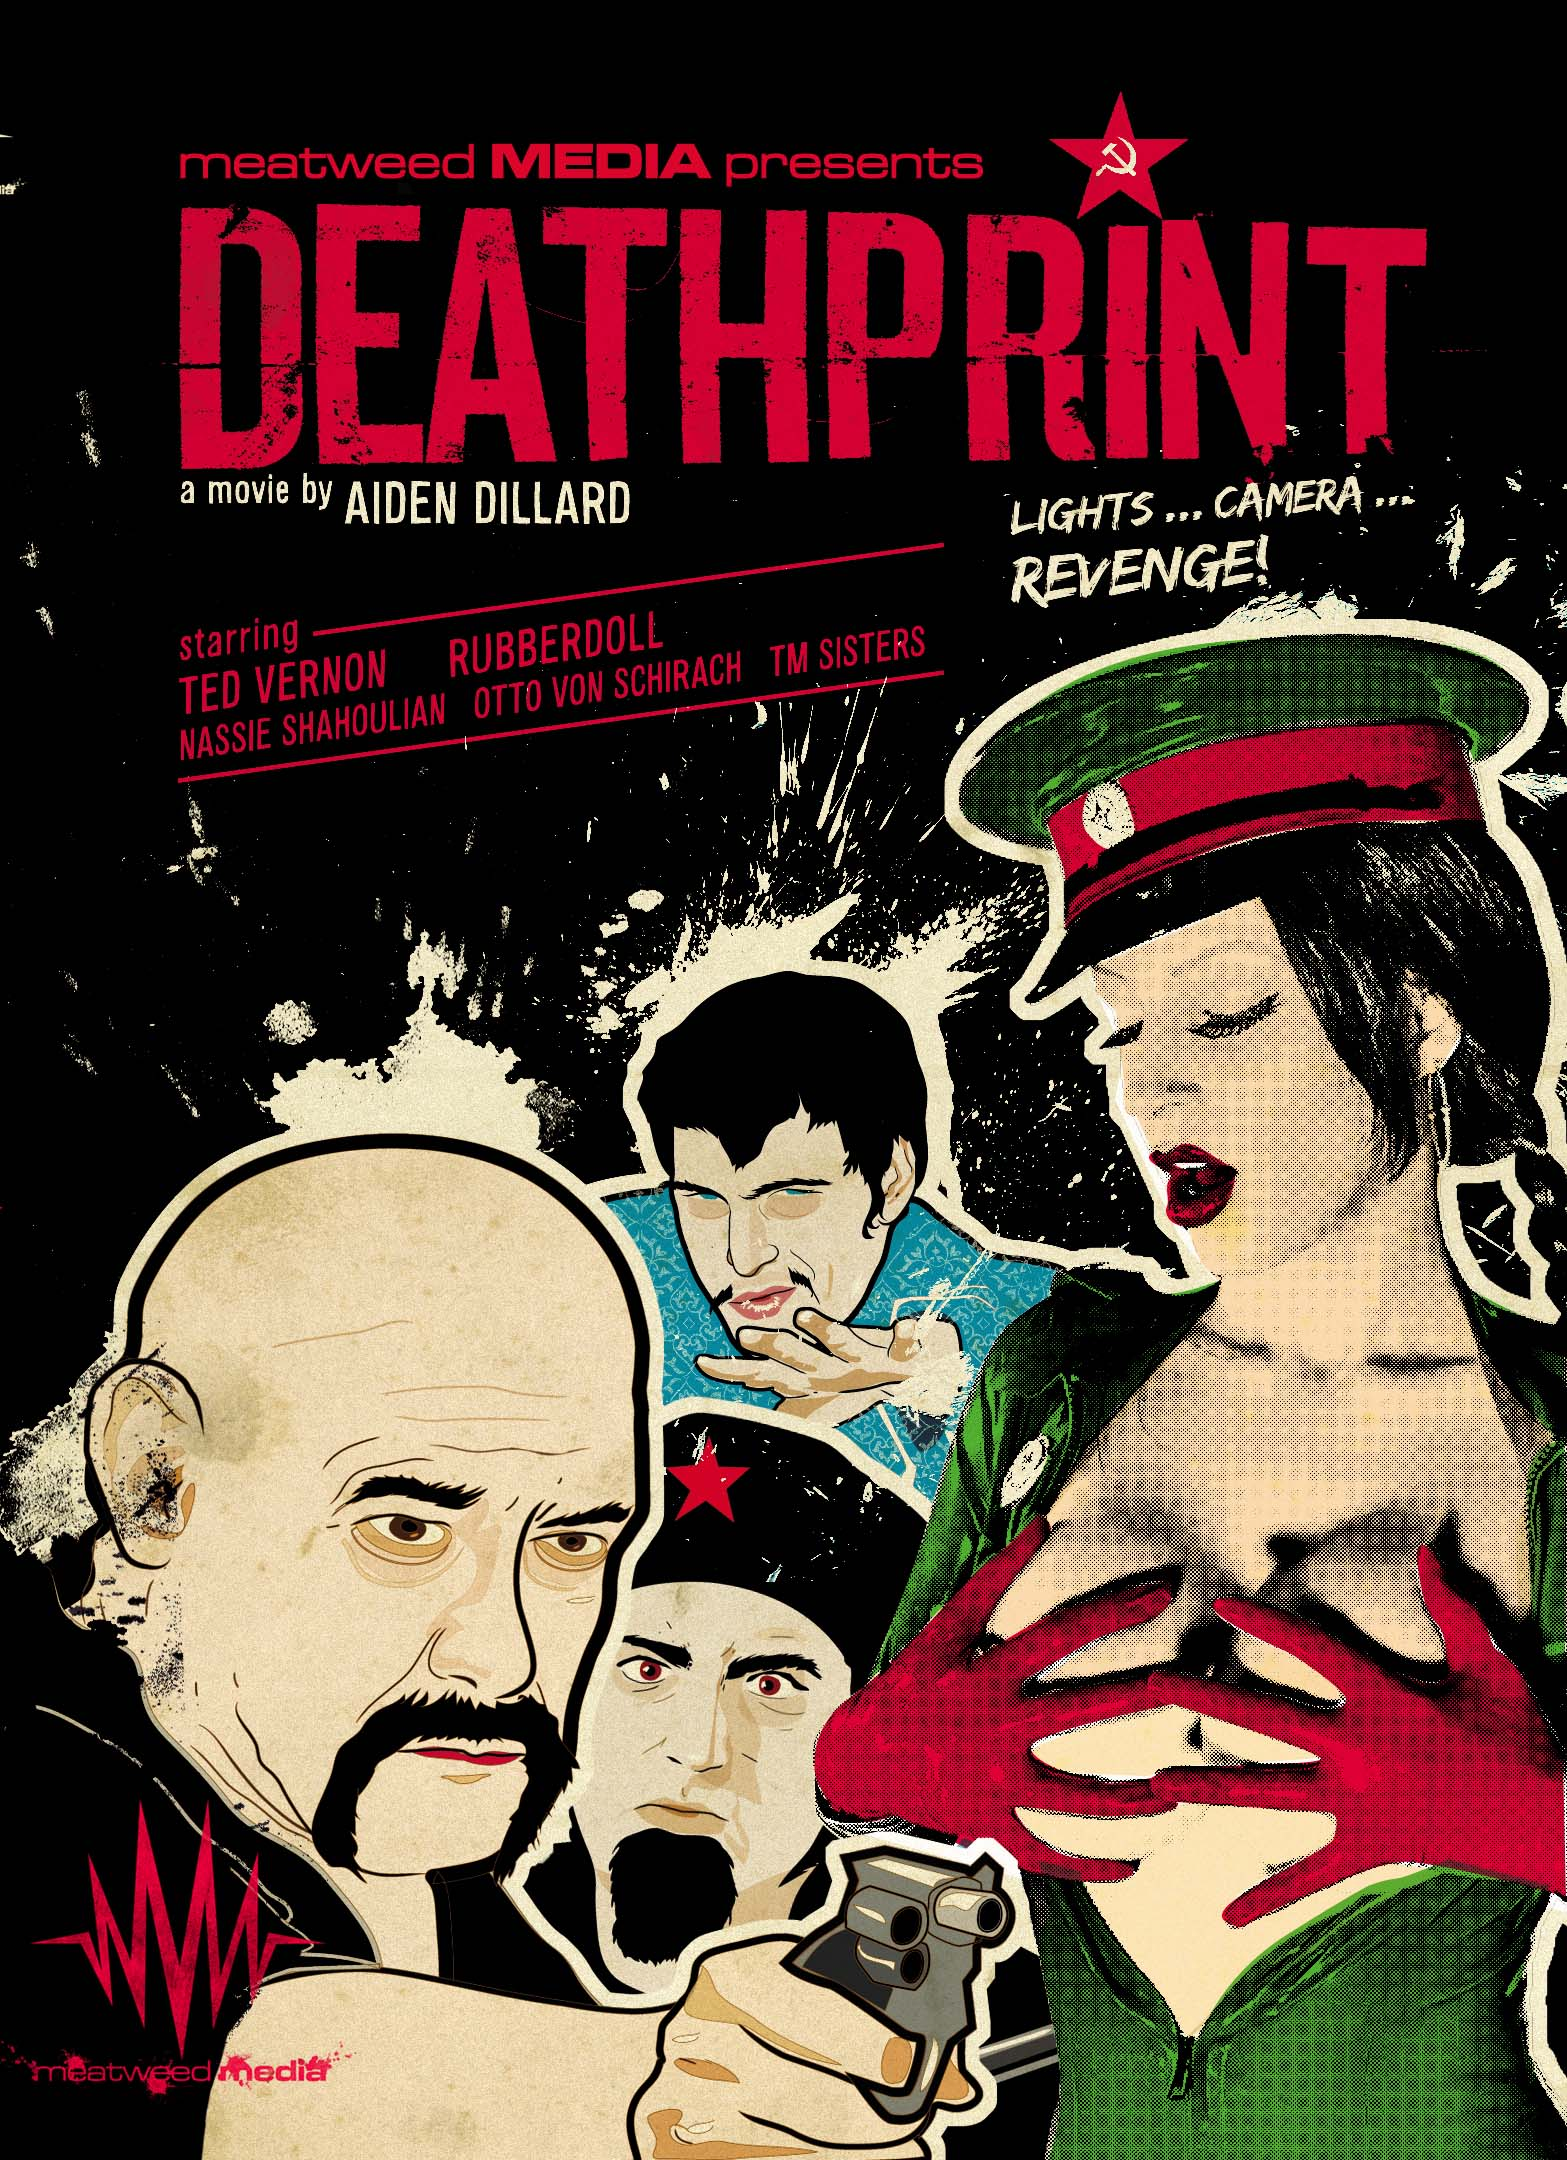 DEATH PRINT DVD COVER.jpg